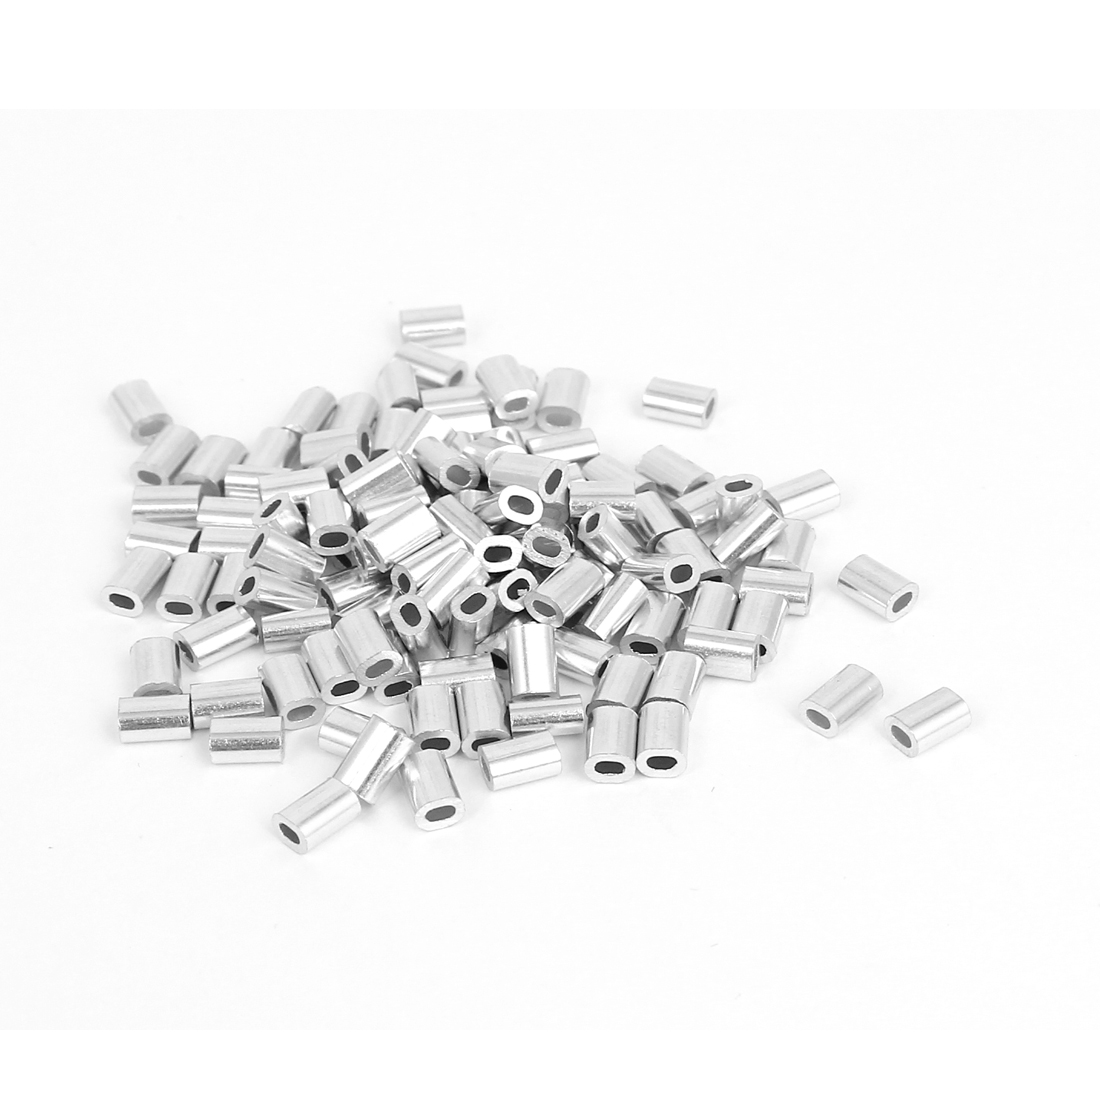 UXCELL 0.8Mm 1/32 Steel Wire Rope Aluminum Ferrules Sleeves Silver Tone 100 Pcs Adequate Margin Of Safety For The Intended Use ...